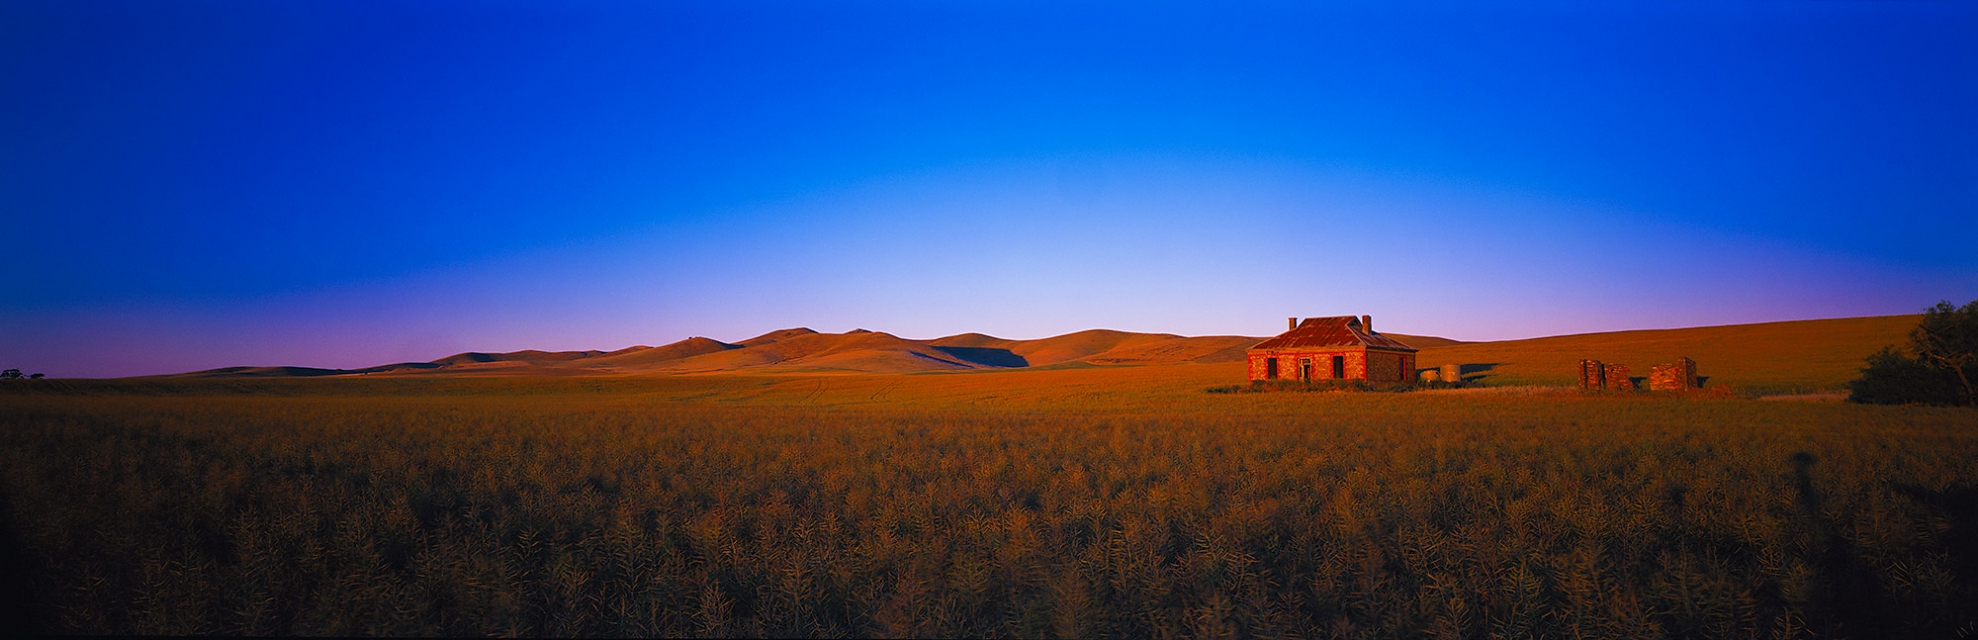 farm-house-south-australia-shack-buy-limited-edition-photography-ric-steininger-gallery-Hill-of-grace